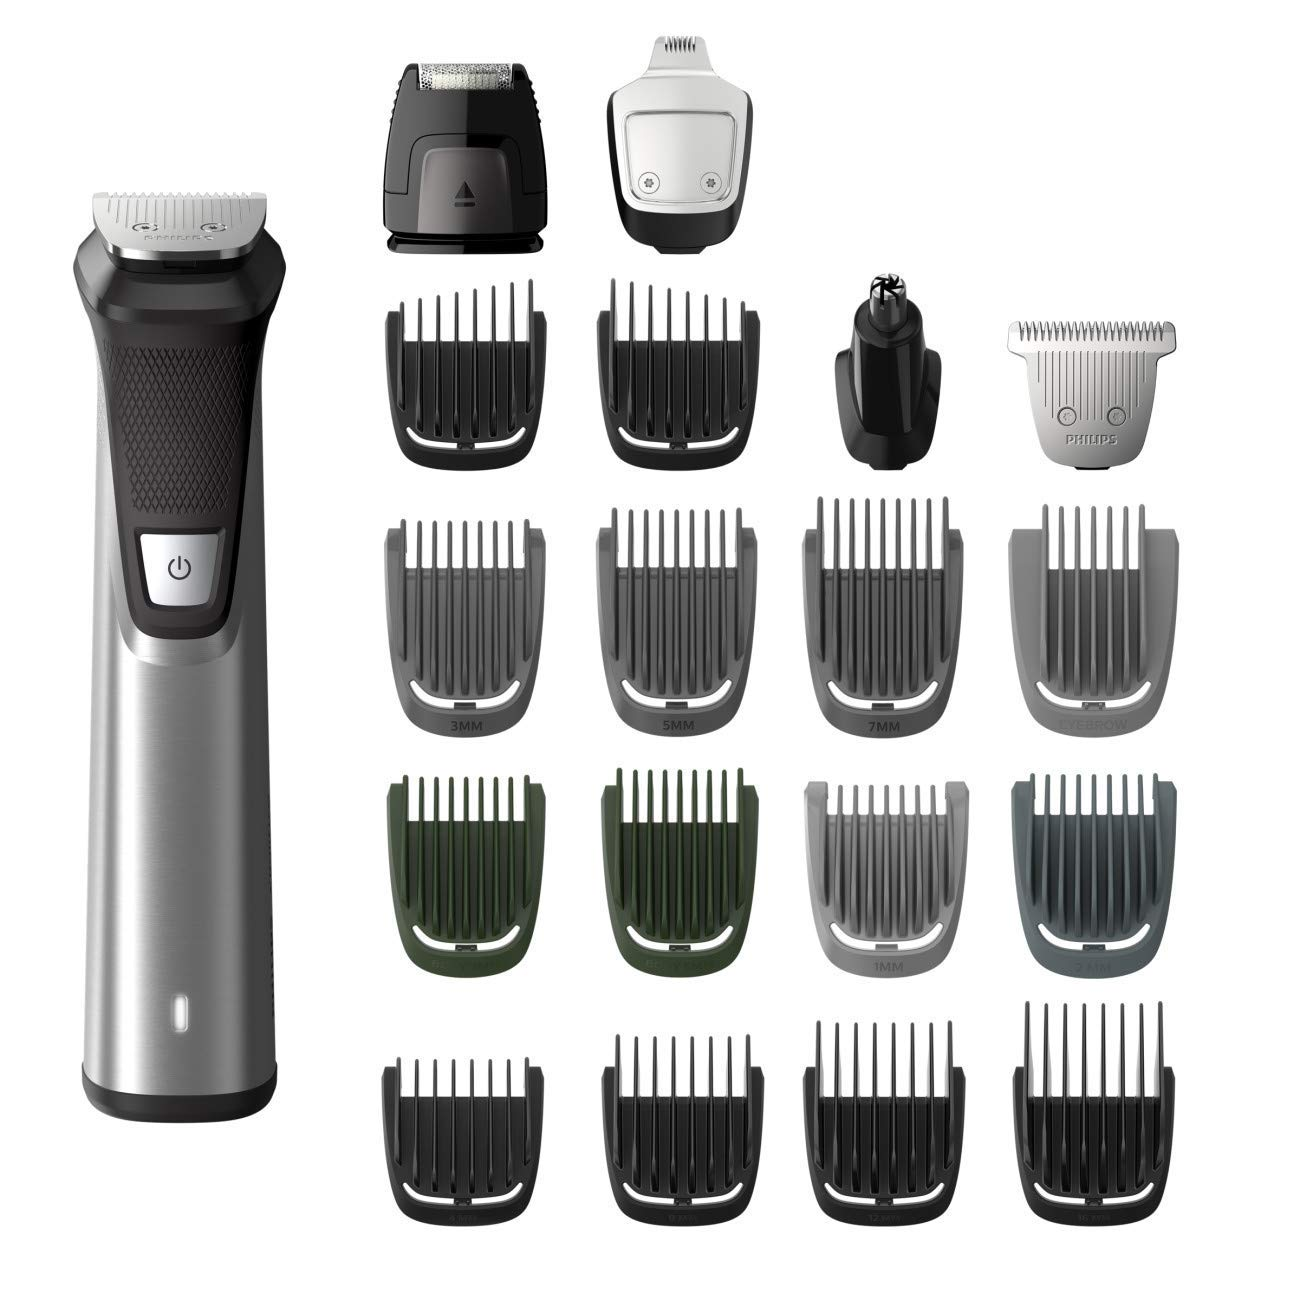 Philips 25-Piece All In One Face & Body, Unisex, Rechargeable Multigroom Trimmer Kit with Premium Case (MG7770/49 Series 9000)